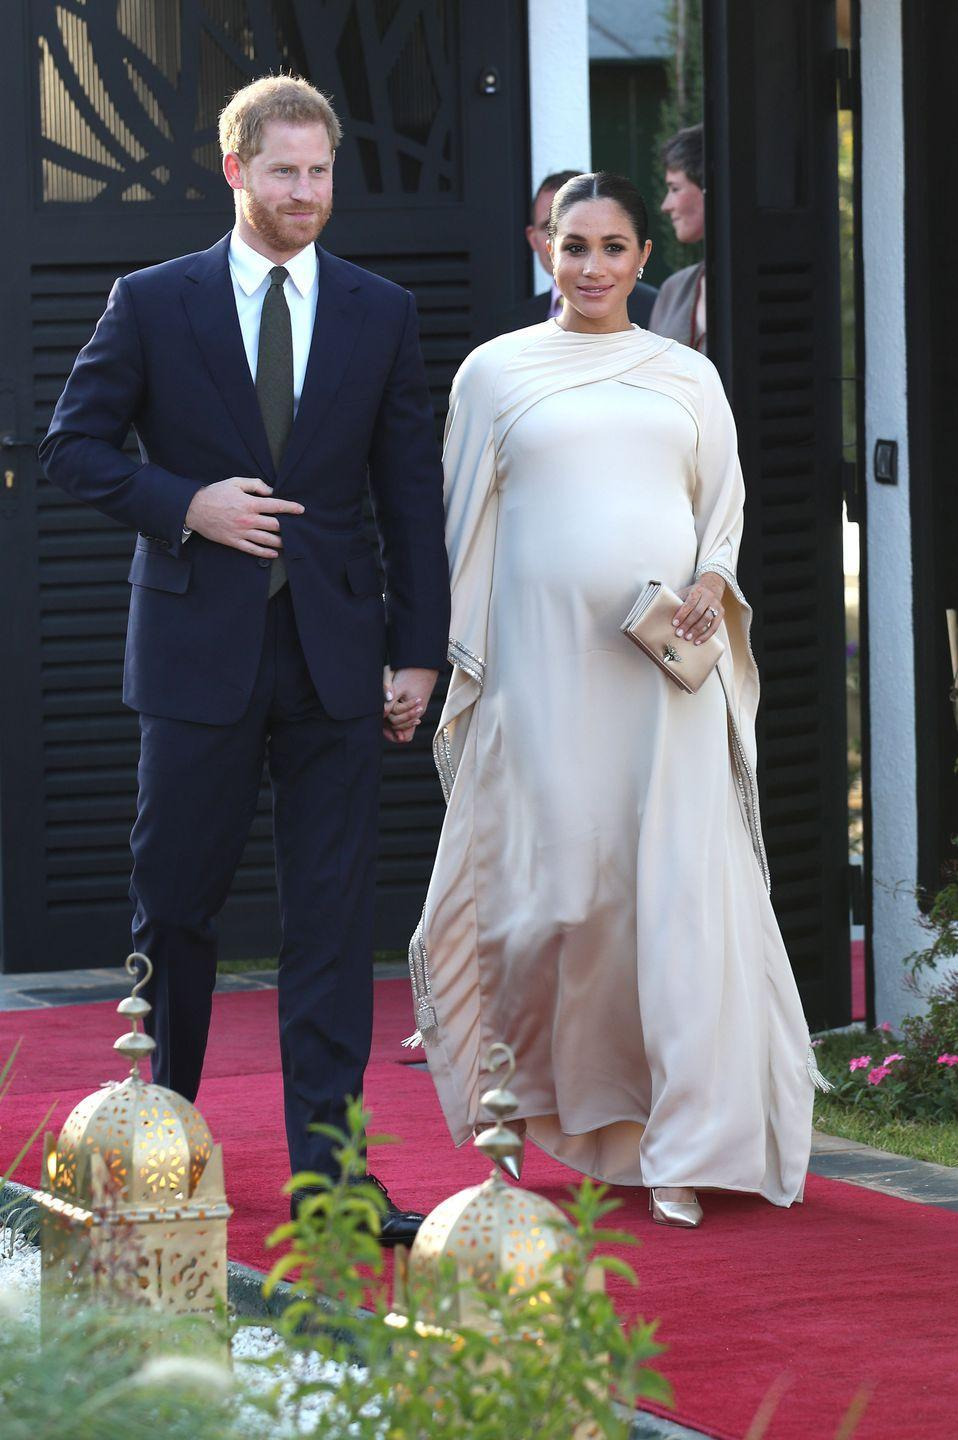 """<p>Meghan arrived at the British Ambassador residence wearing a gorgeous bespoke Dior gown. She paired the look with <a href=""""https://www.maisonbirks.com/en/birks-snowflake-snowstorm-diamond-earrings-in-white-gold"""" rel=""""nofollow noopener"""" target=""""_blank"""" data-ylk=""""slk:diamond earrings by Maison Birks"""" class=""""link rapid-noclick-resp"""">diamond earrings by Maison Birks</a>, which she <a href=""""https://www.townandcountrymag.com/style/fashion-trends/a24183870/meghan-markle-white-theia-gown-dinner-tonga-photo/"""" rel=""""nofollow noopener"""" target=""""_blank"""" data-ylk=""""slk:wore on her Oceanic tour"""" class=""""link rapid-noclick-resp"""">wore on her Oceanic tour</a>, <a href=""""https://go.redirectingat.com?id=74968X1596630&url=https%3A%2F%2Fus.vestiairecollective.com%2Fwomen-bags%2Fdior%2Fd-bee%2F&sref=https%3A%2F%2Fwww.townandcountrymag.com%2Fstyle%2Ffashion-trends%2Fg3272%2Fmeghan-markle-preppy-style%2F"""" rel=""""nofollow noopener"""" target=""""_blank"""" data-ylk=""""slk:a satin clutch"""" class=""""link rapid-noclick-resp"""">a satin clutch</a> and gold pumps, both by Dior. </p>"""